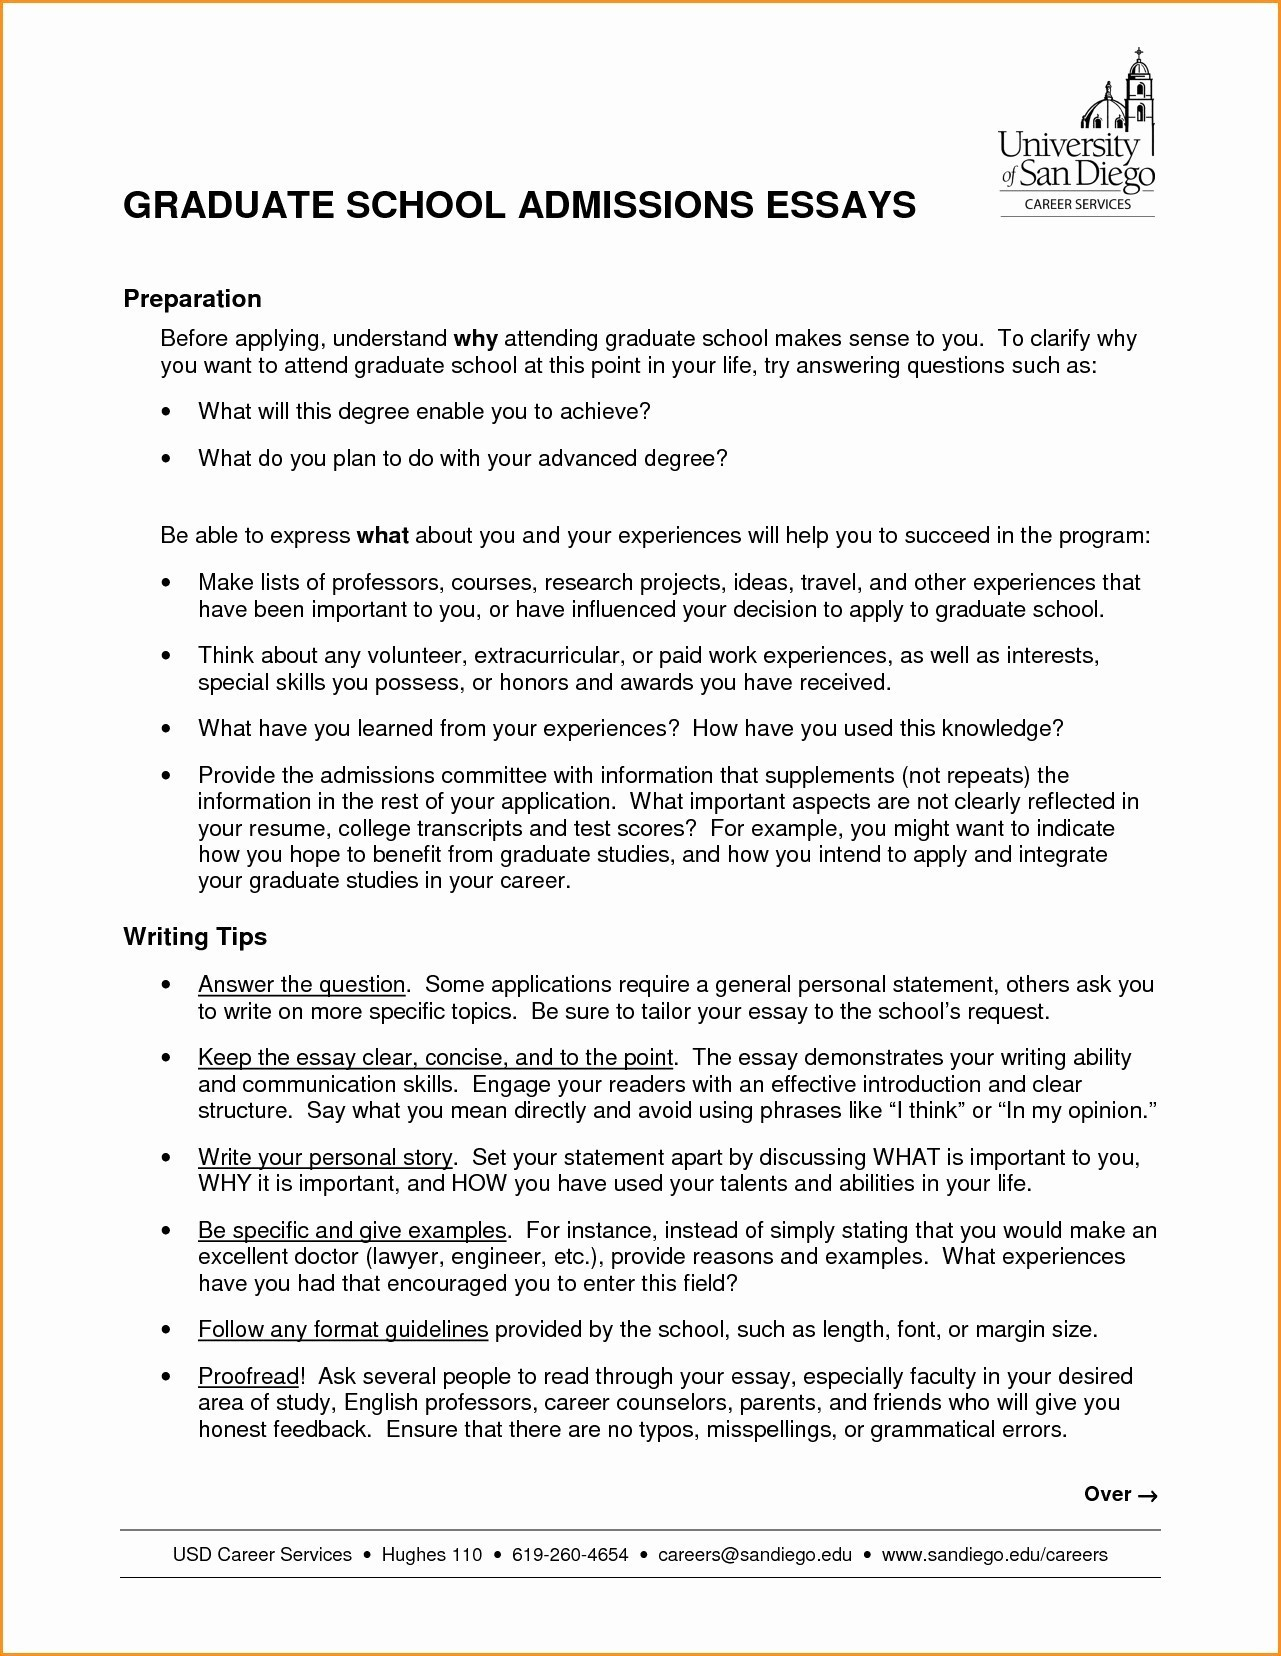 graduate school cover letter template Collection-Graduate School Application Resume Best Elegant Recent Graduate Cover Letter Elegant Nursing Resumes 0d 12-d